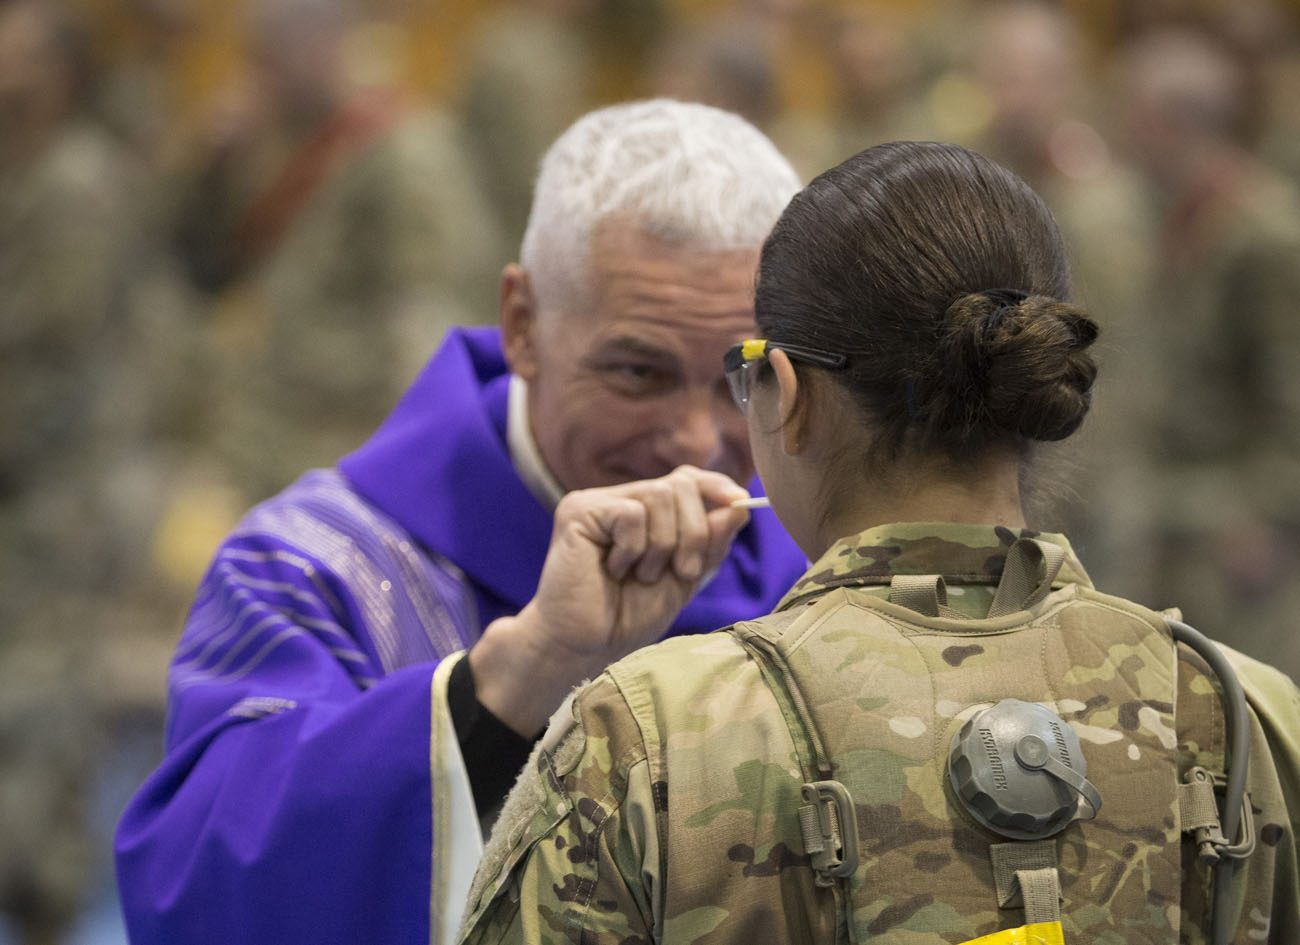 Father John G. Breaux Jr., a priest from the Diocese of Lafayette, La., gives Communion to a new Army soldier during a Mass in March at Fort Jackson in Columbia, S.C. Father Breaux was training for his new role as a military chaplain at the U.S. Army's Chaplain Basic Officer Leader Course at Fort Jackson. (CNS photo/Chaz Muth)